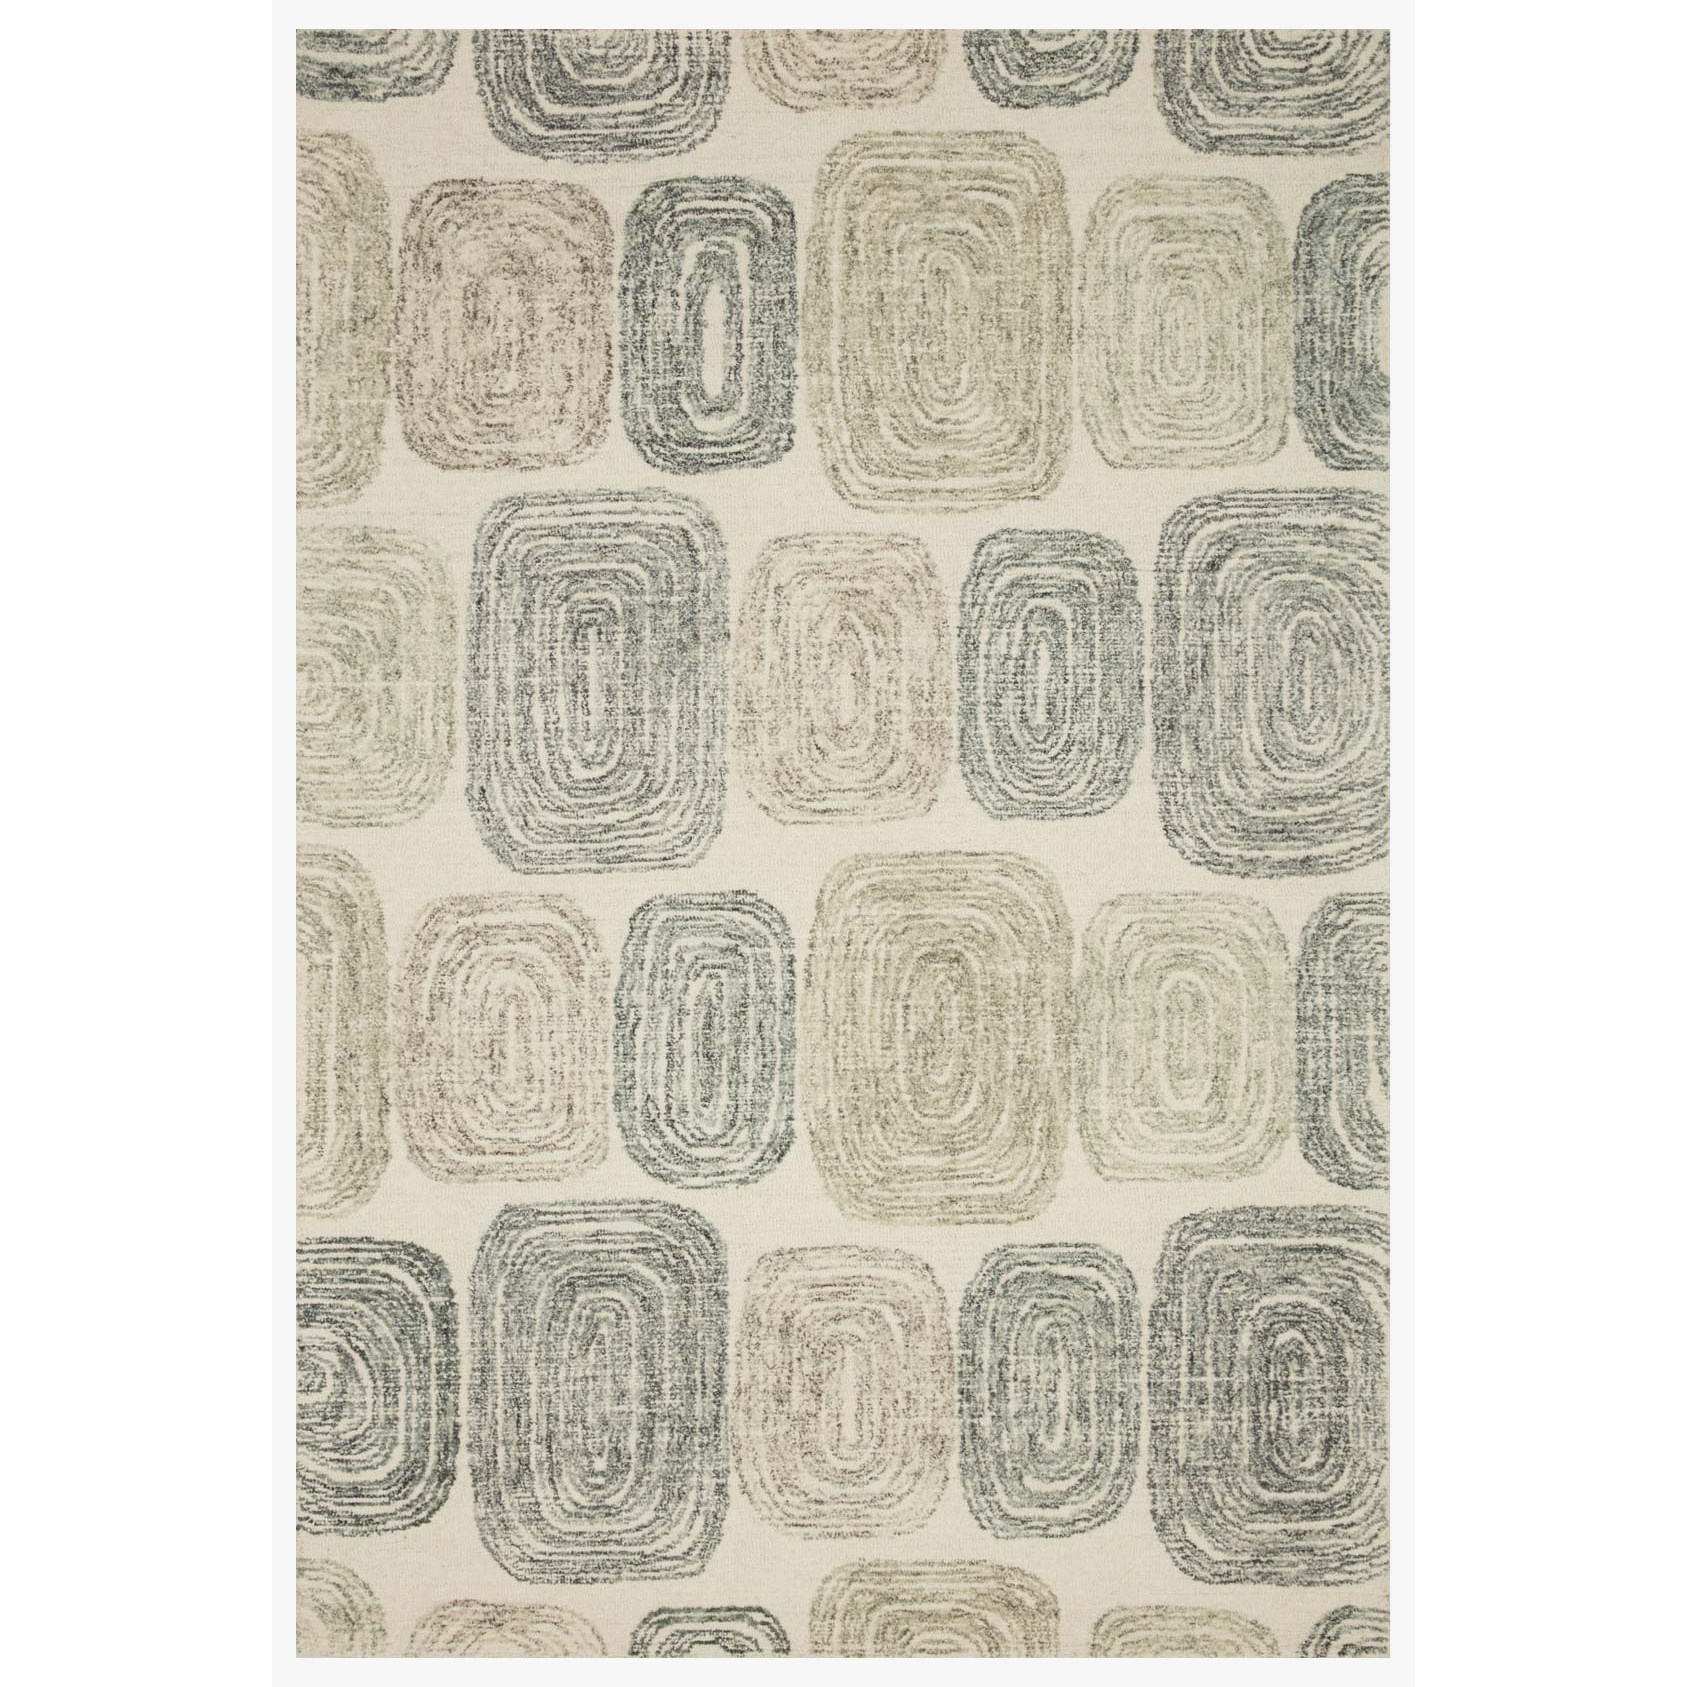 """Milo 18"""" x 18""""  Dk. Grey / Neutral Rug by Loloi Rugs at Virginia Furniture Market"""